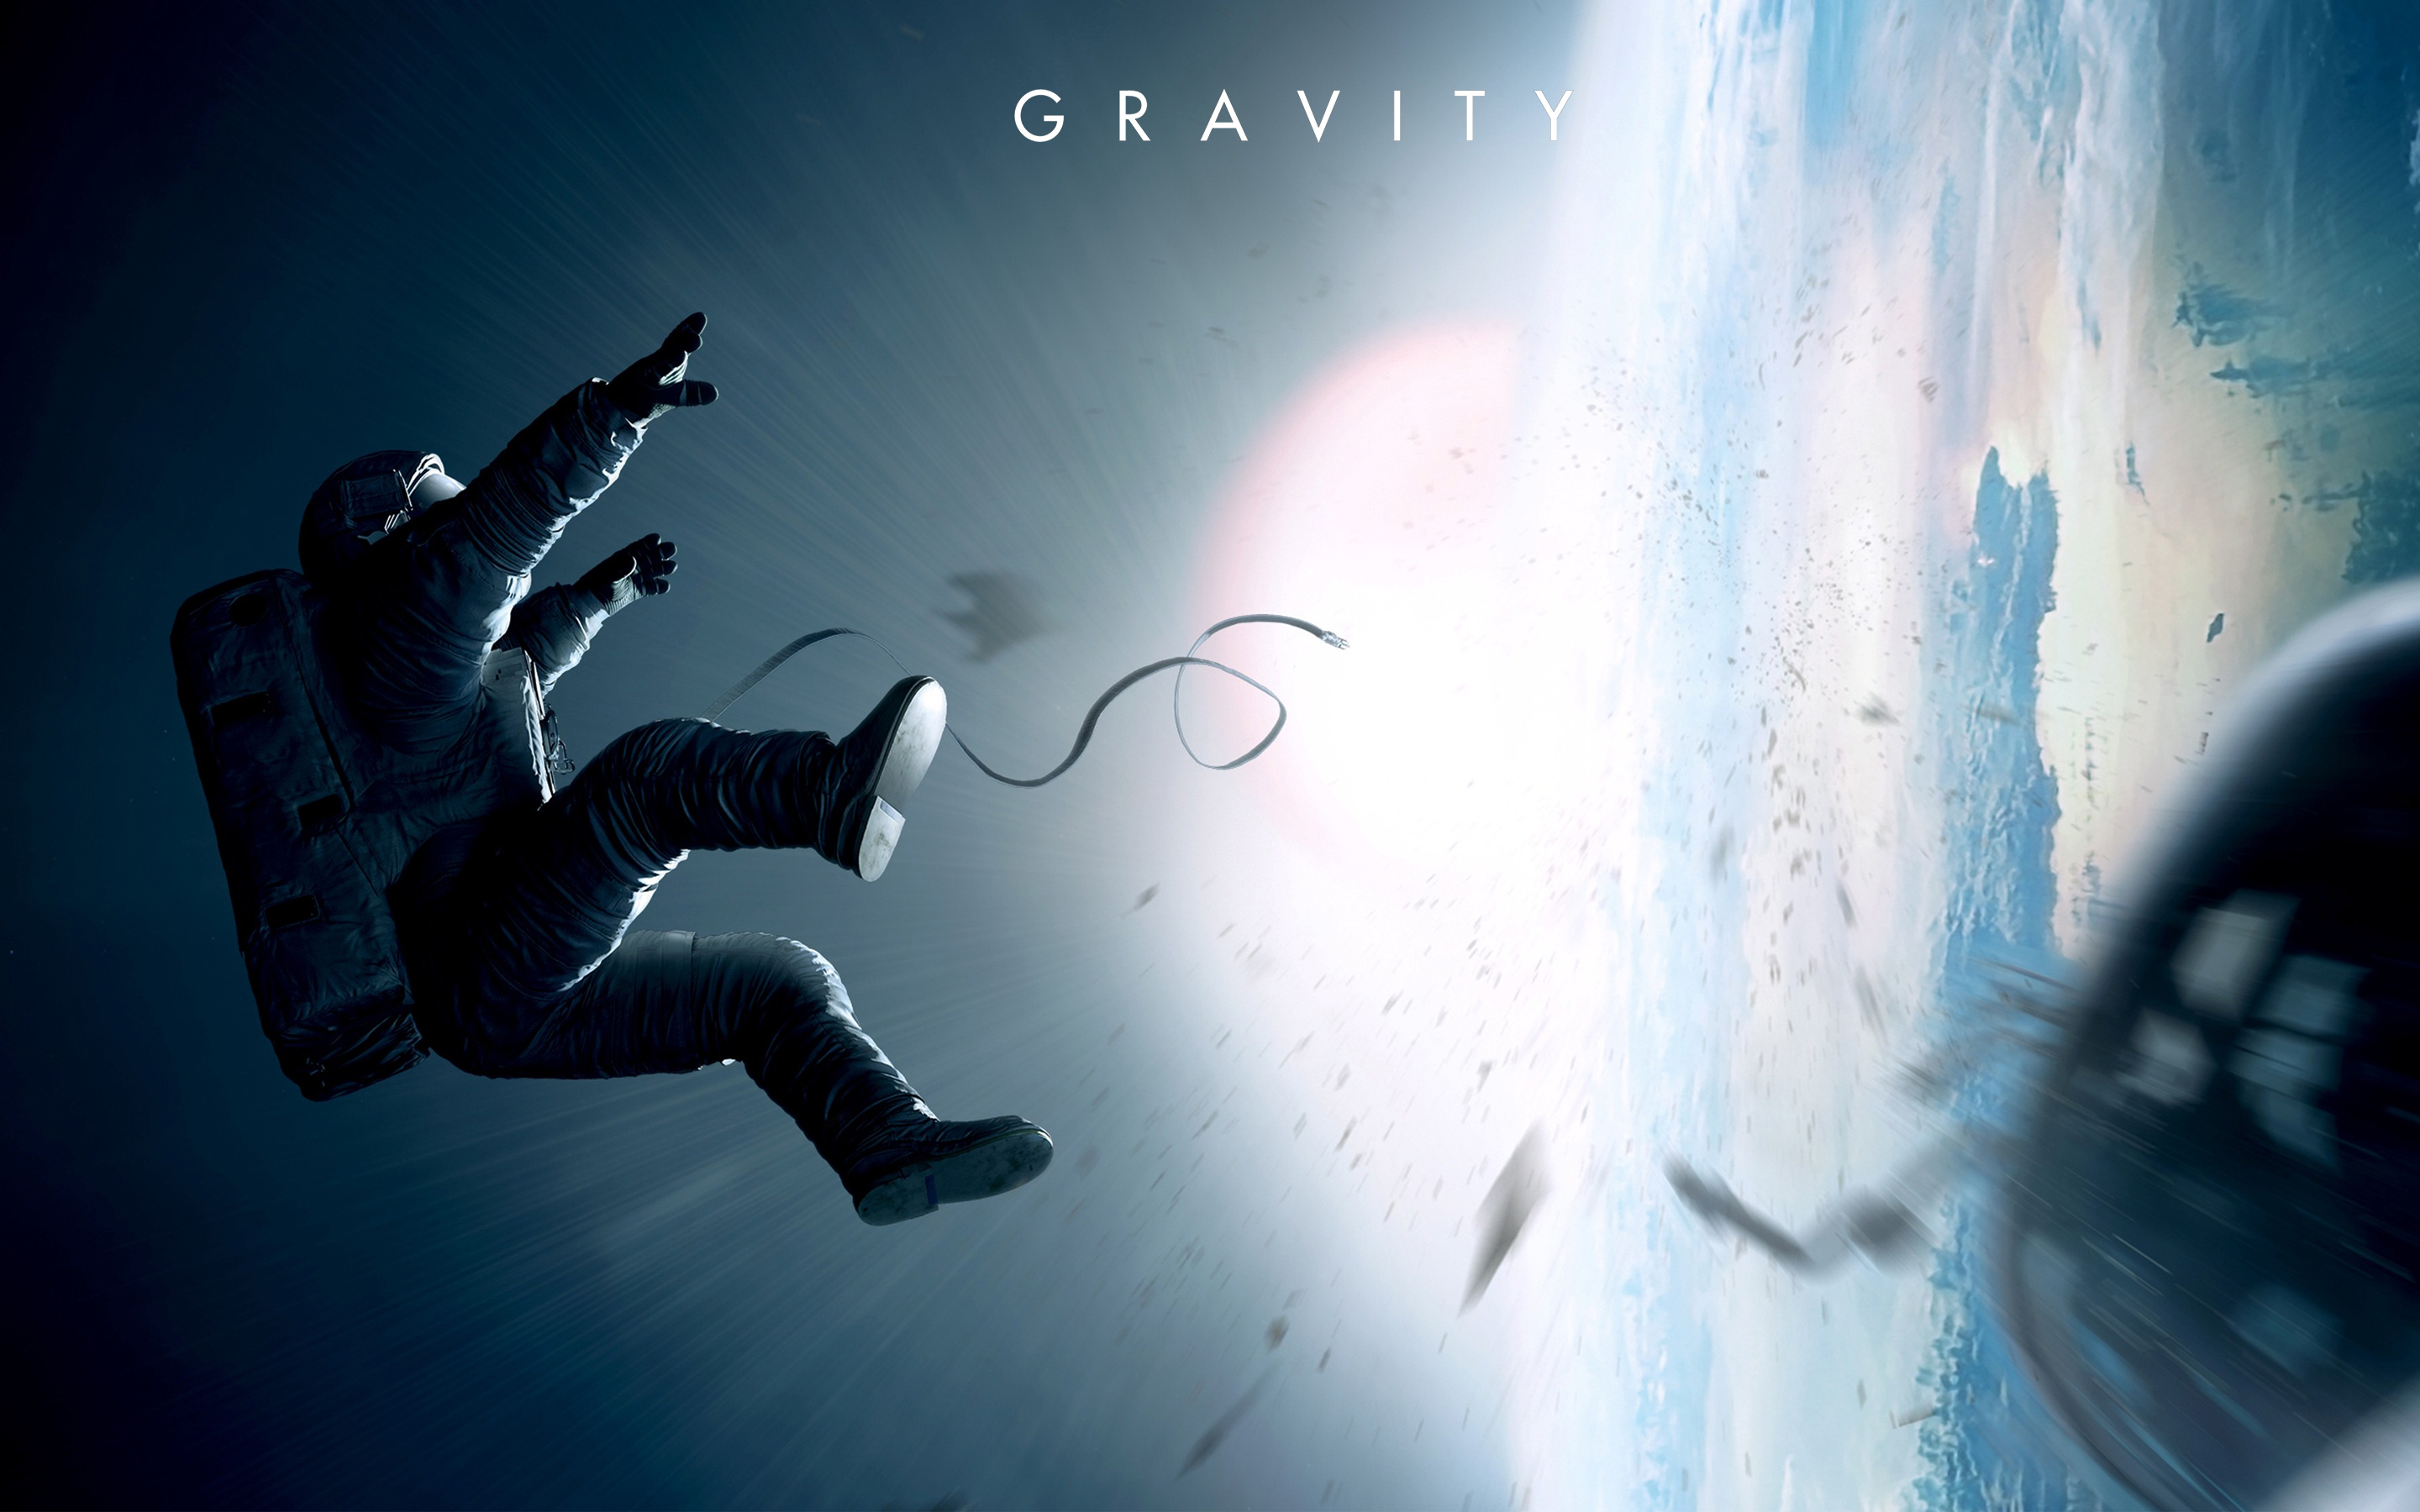 New Gravity Images View 823099 Wallpapers RiseWLP 2880x1800